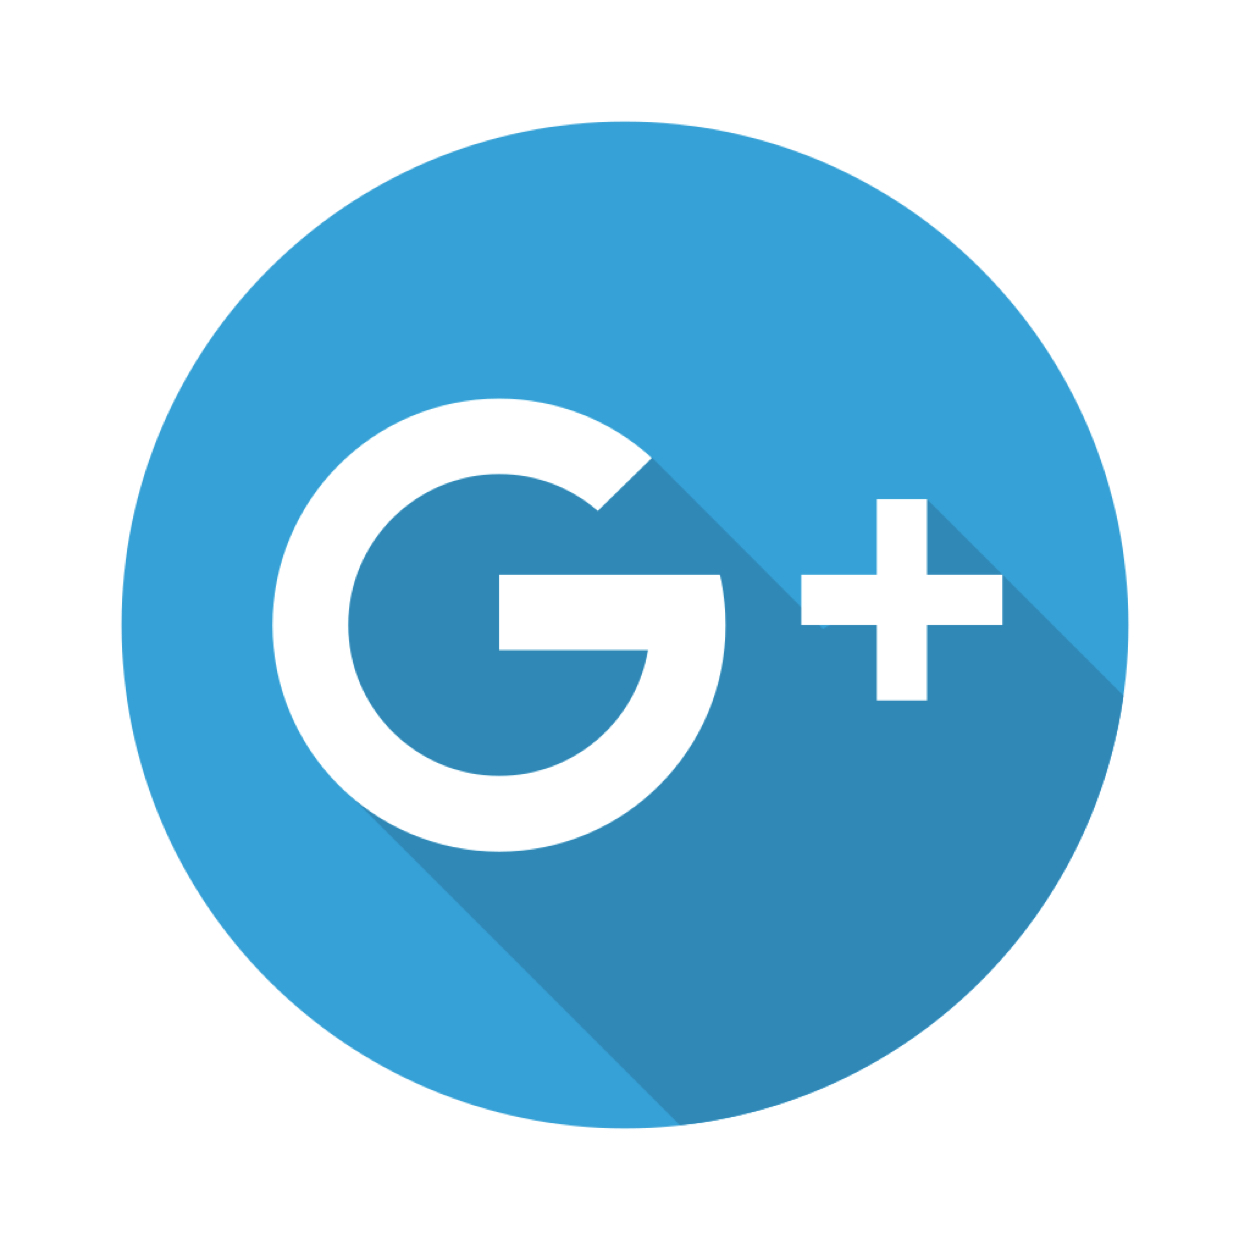 Google Plus Account: Crucial Things to Consider